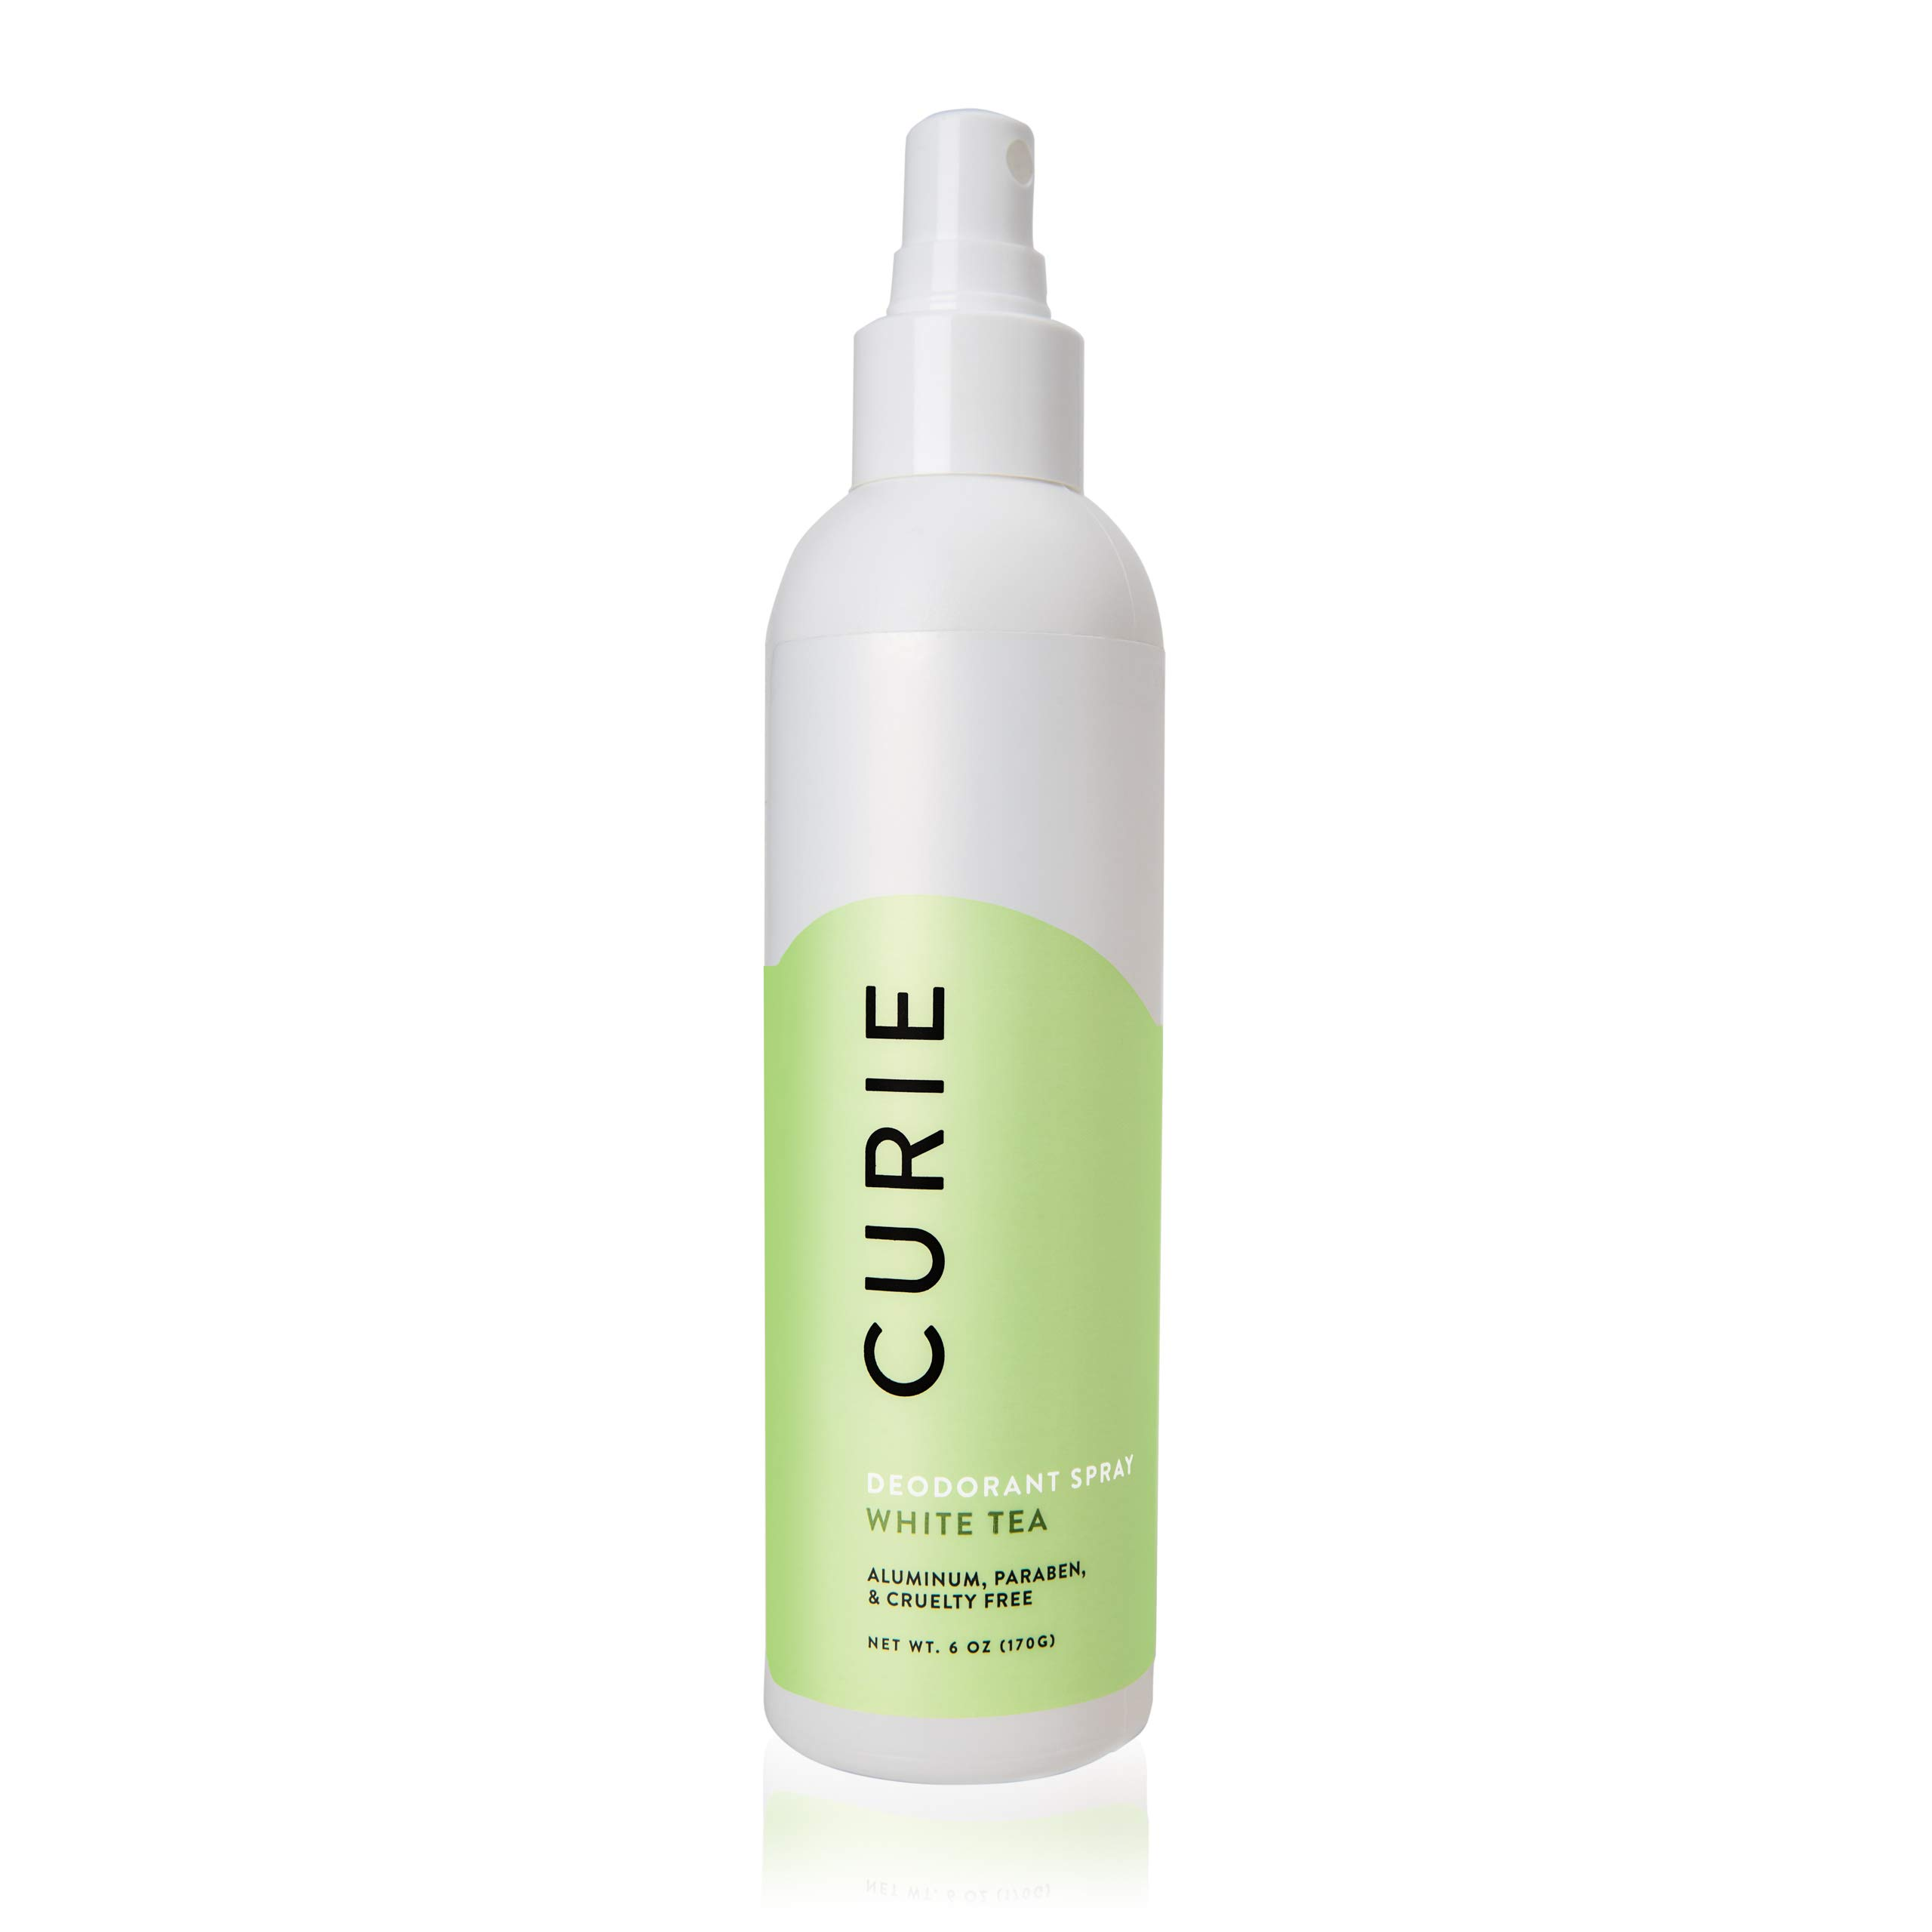 Curie All-Natural Deodorant Spray for Men and Women | Baking Soda-Free | White Tea